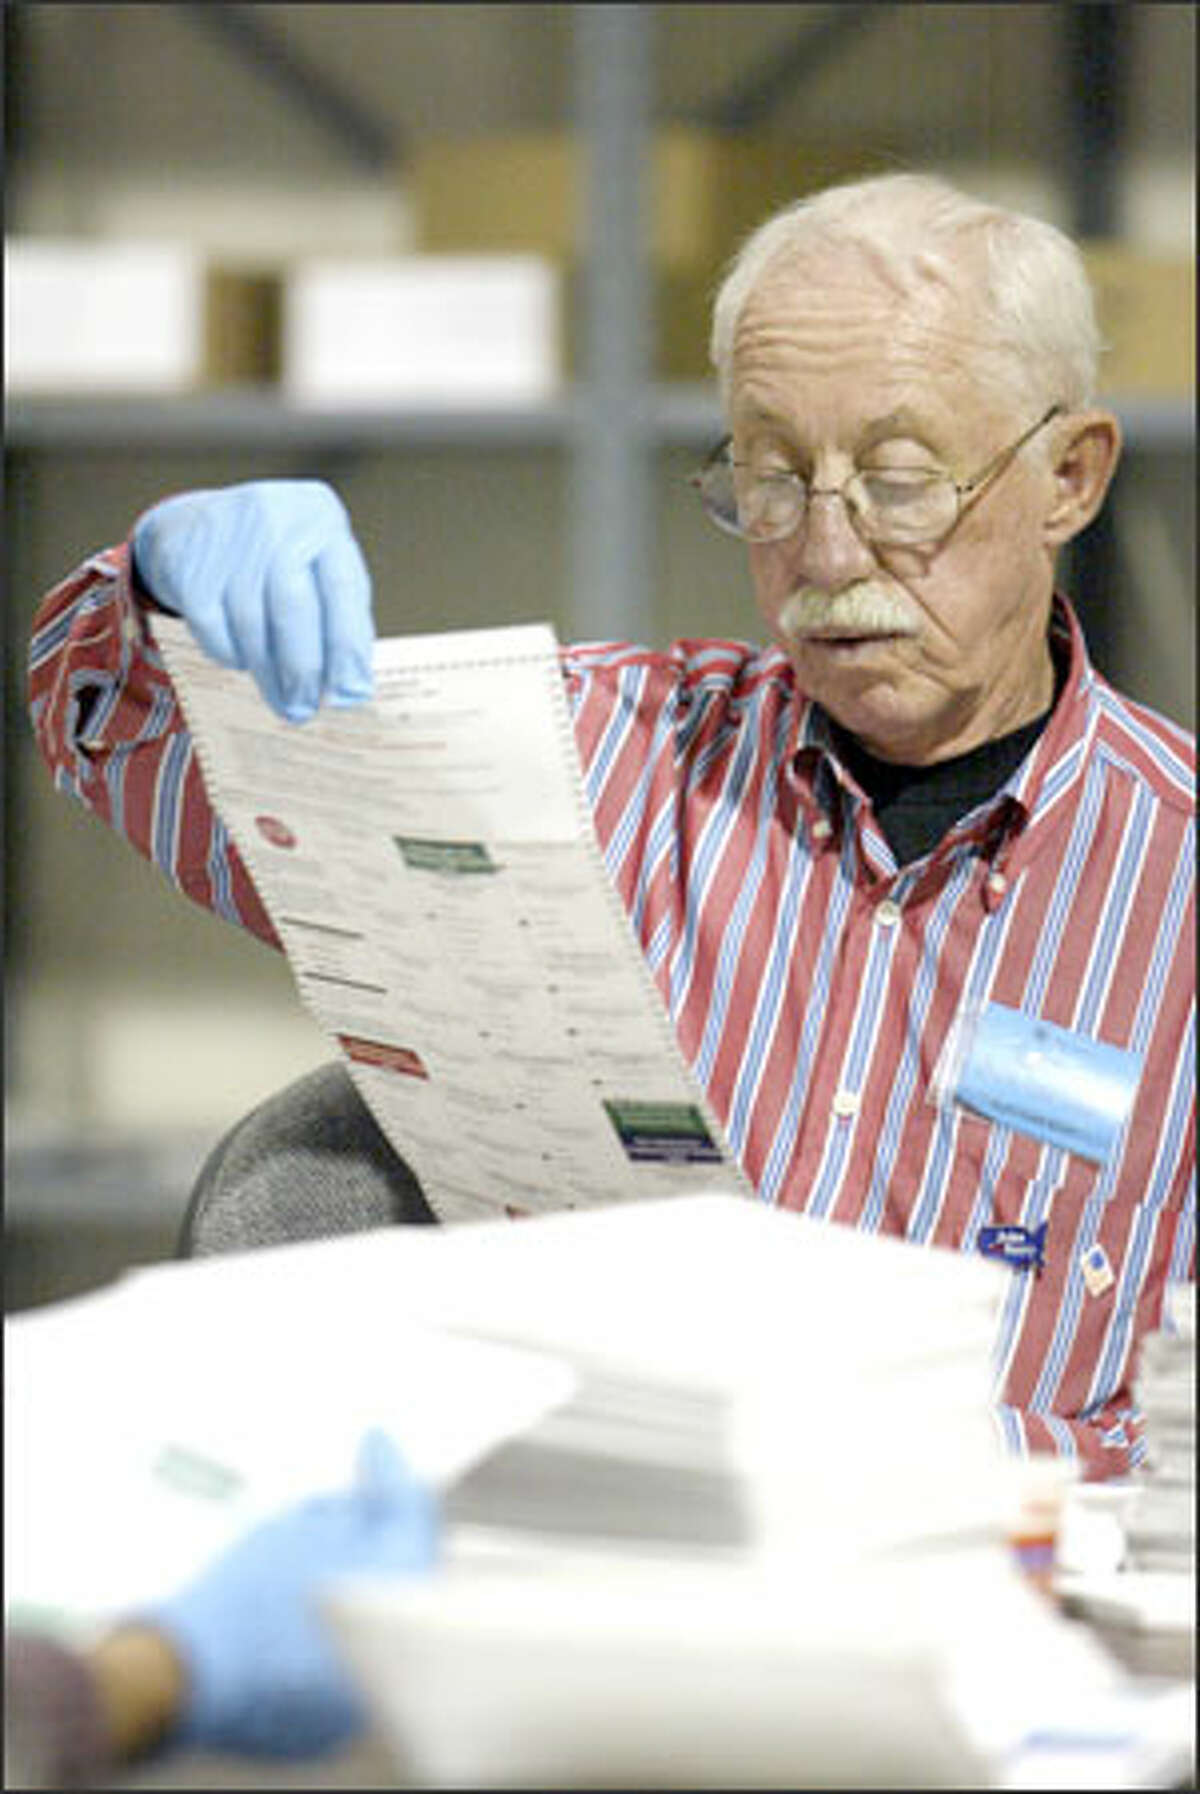 Bob Brown of the Mail Ballot Operations Satellite in South Seattle inspects absentee ballots. If a party is not checked, votes on that ballot for partisan races are not counted.